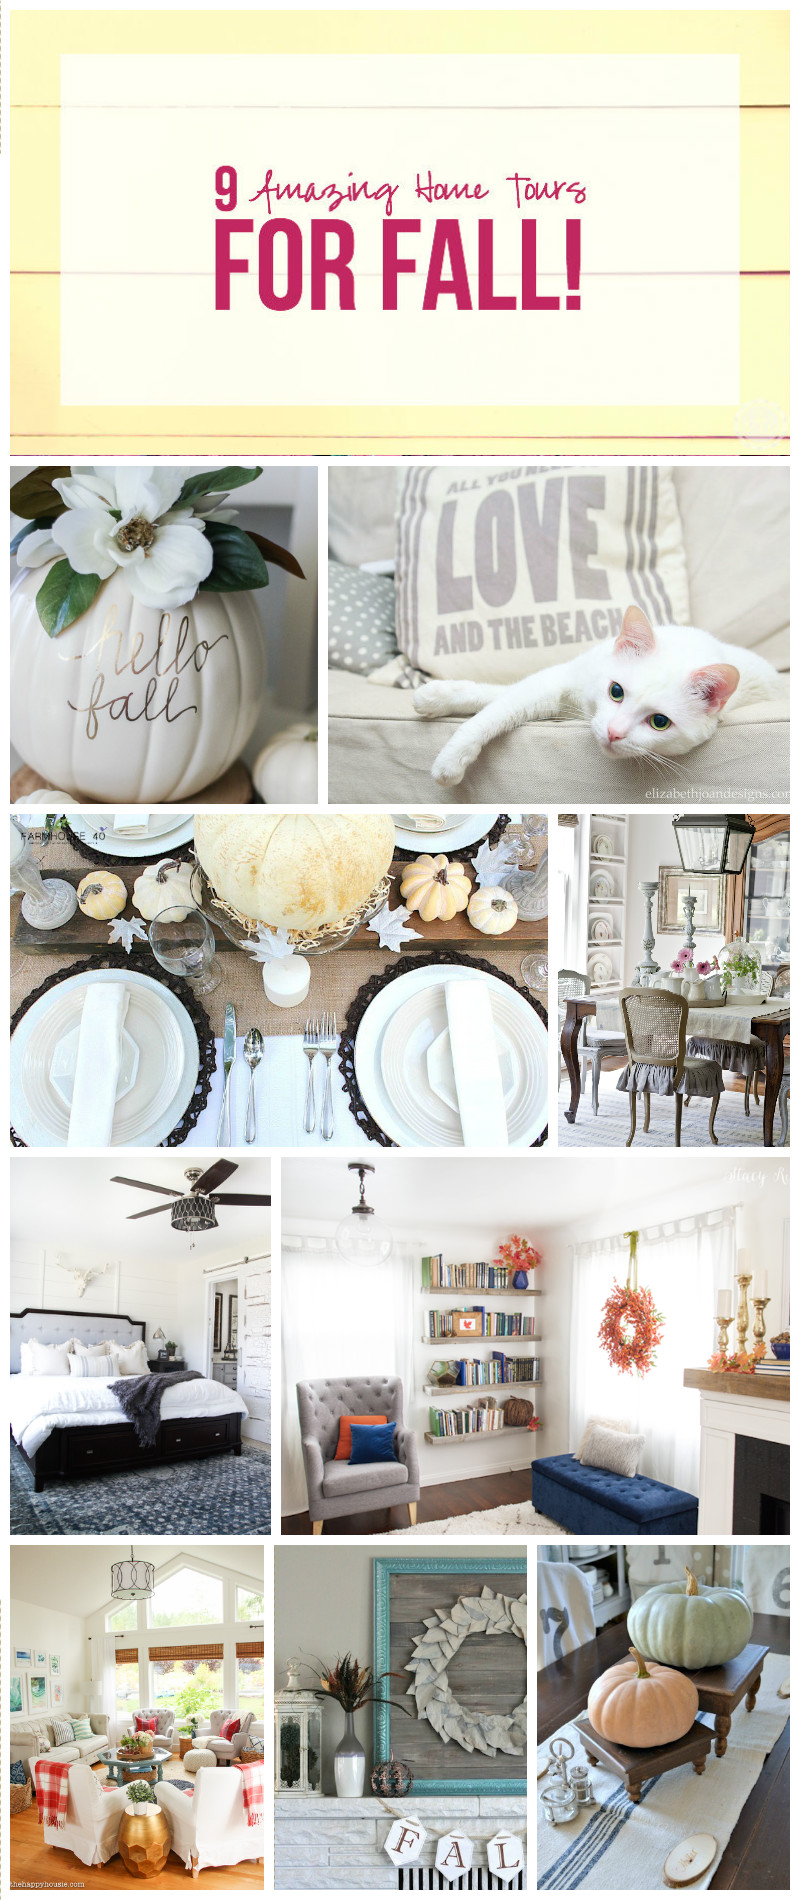 9 Amazing Home Tours for Fall!